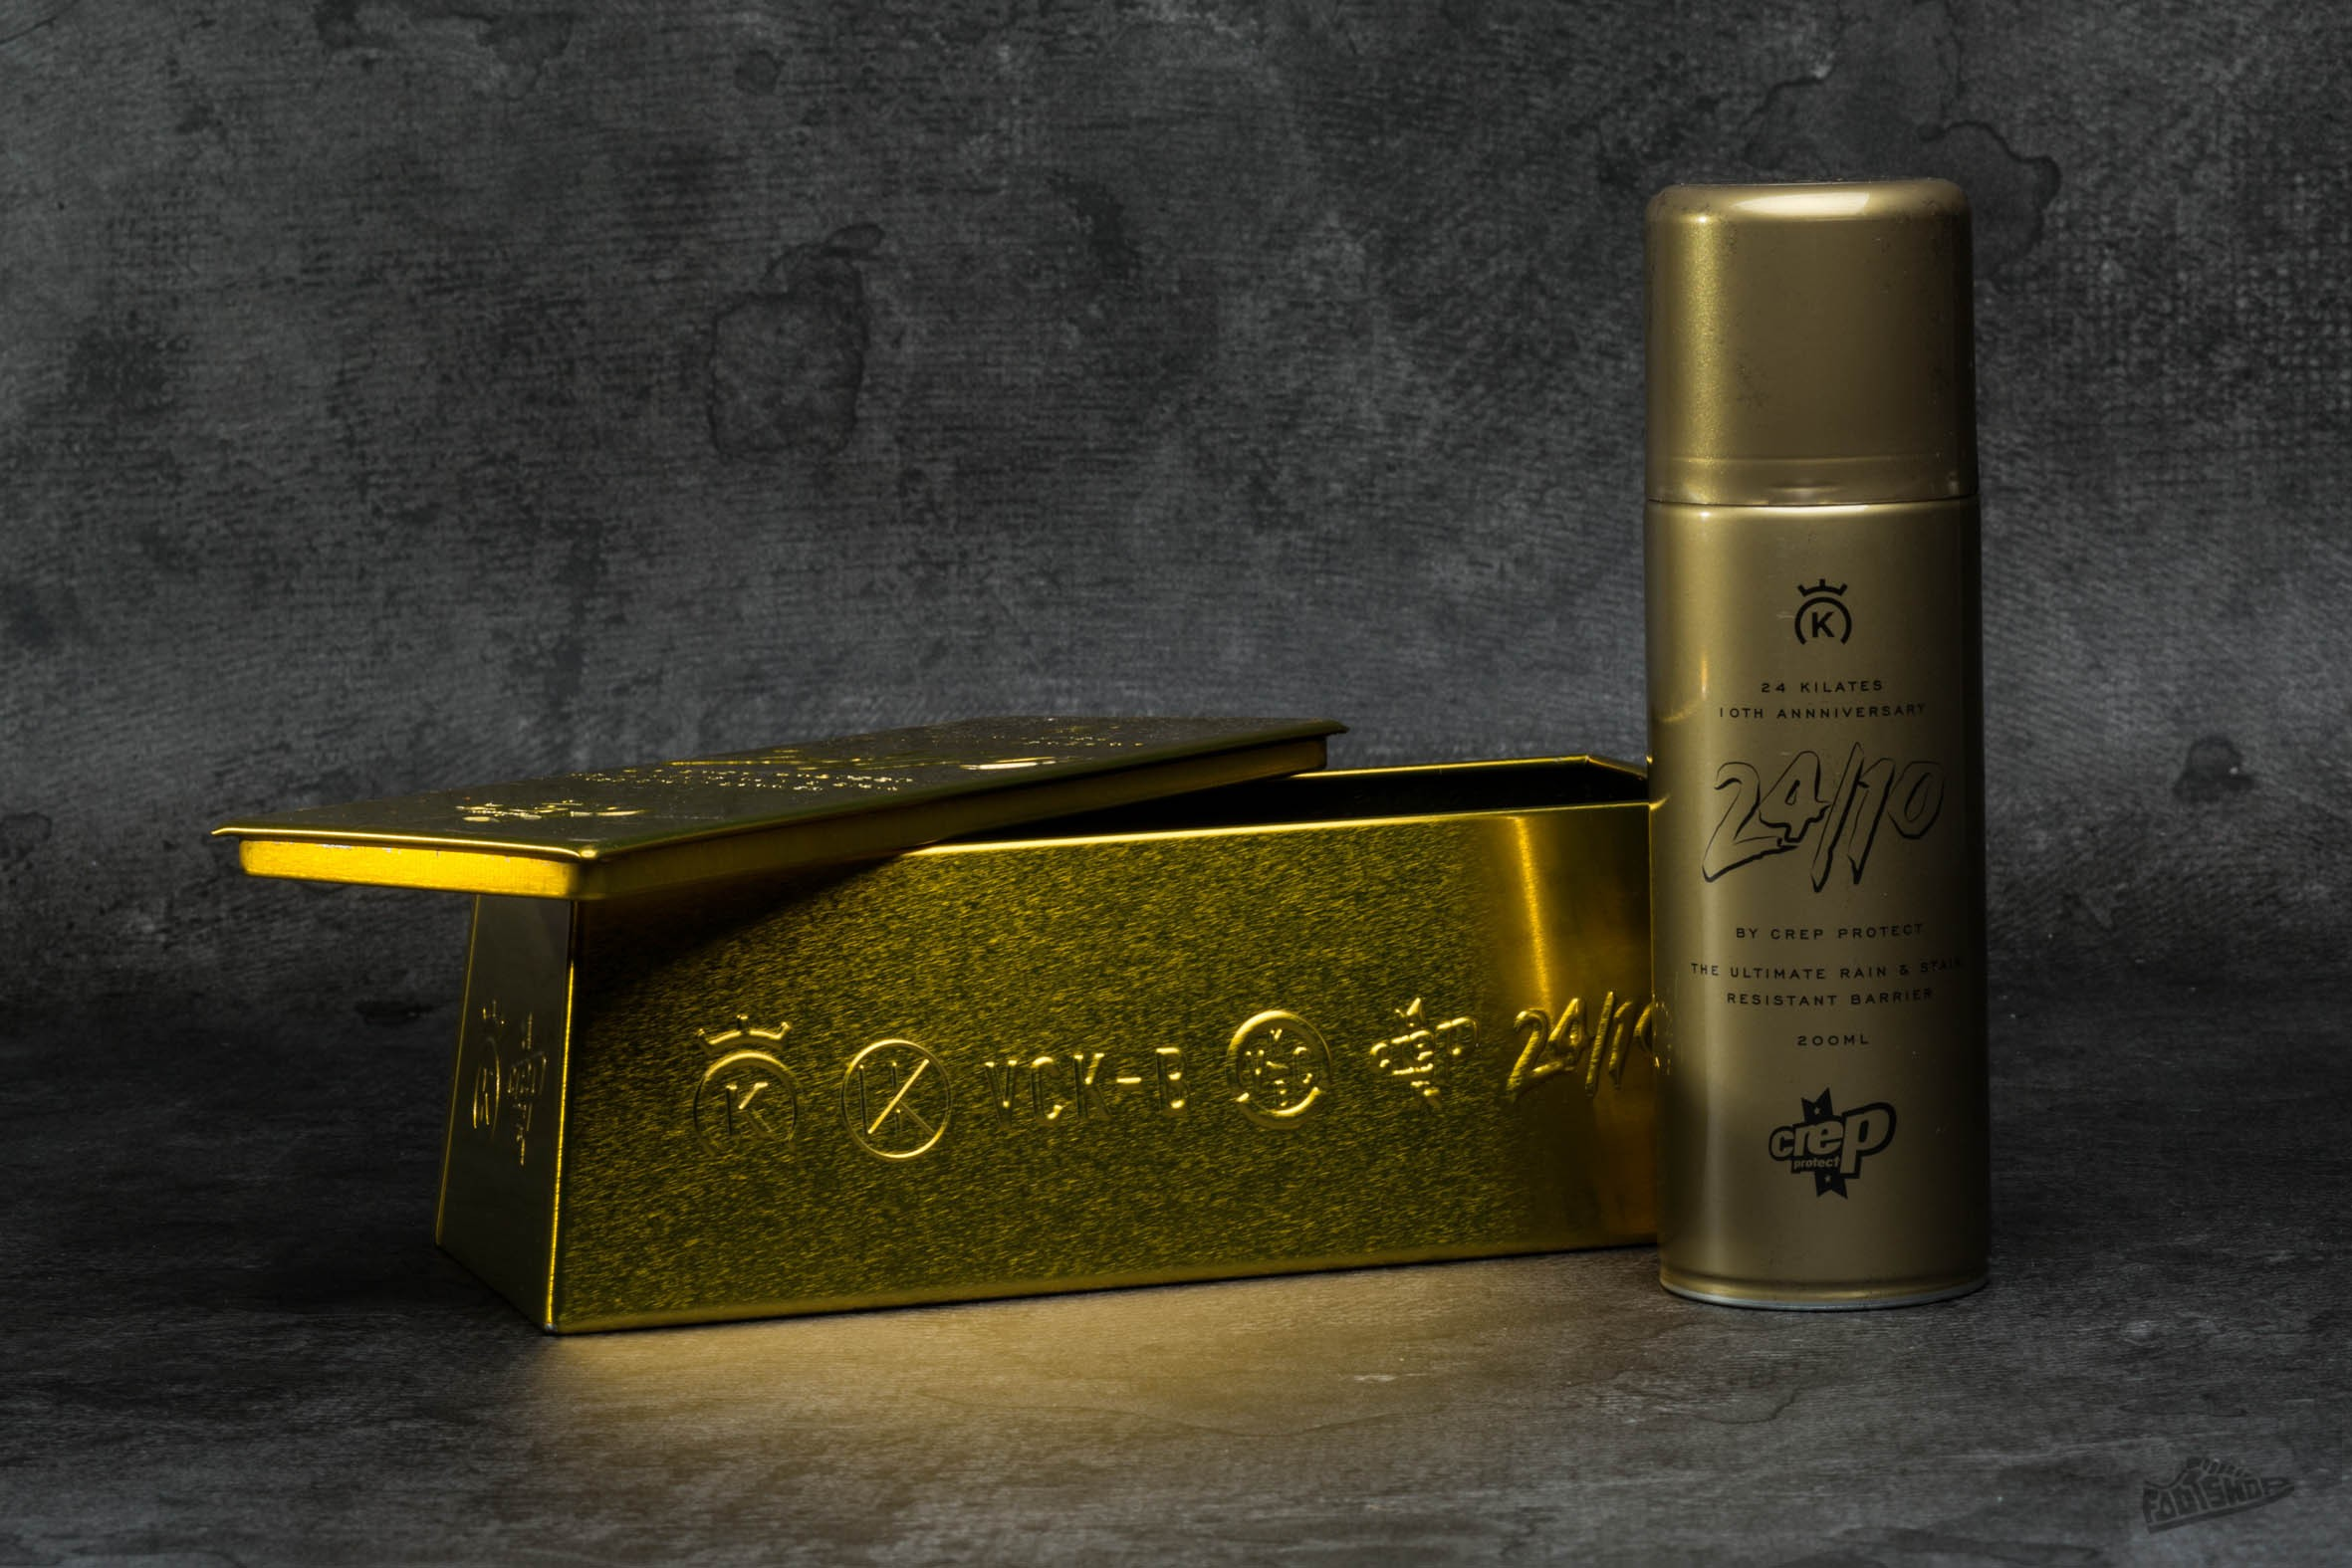 Crep Protect x 24 Kilates '24/10 Gold Bar' Collaboration - 8990